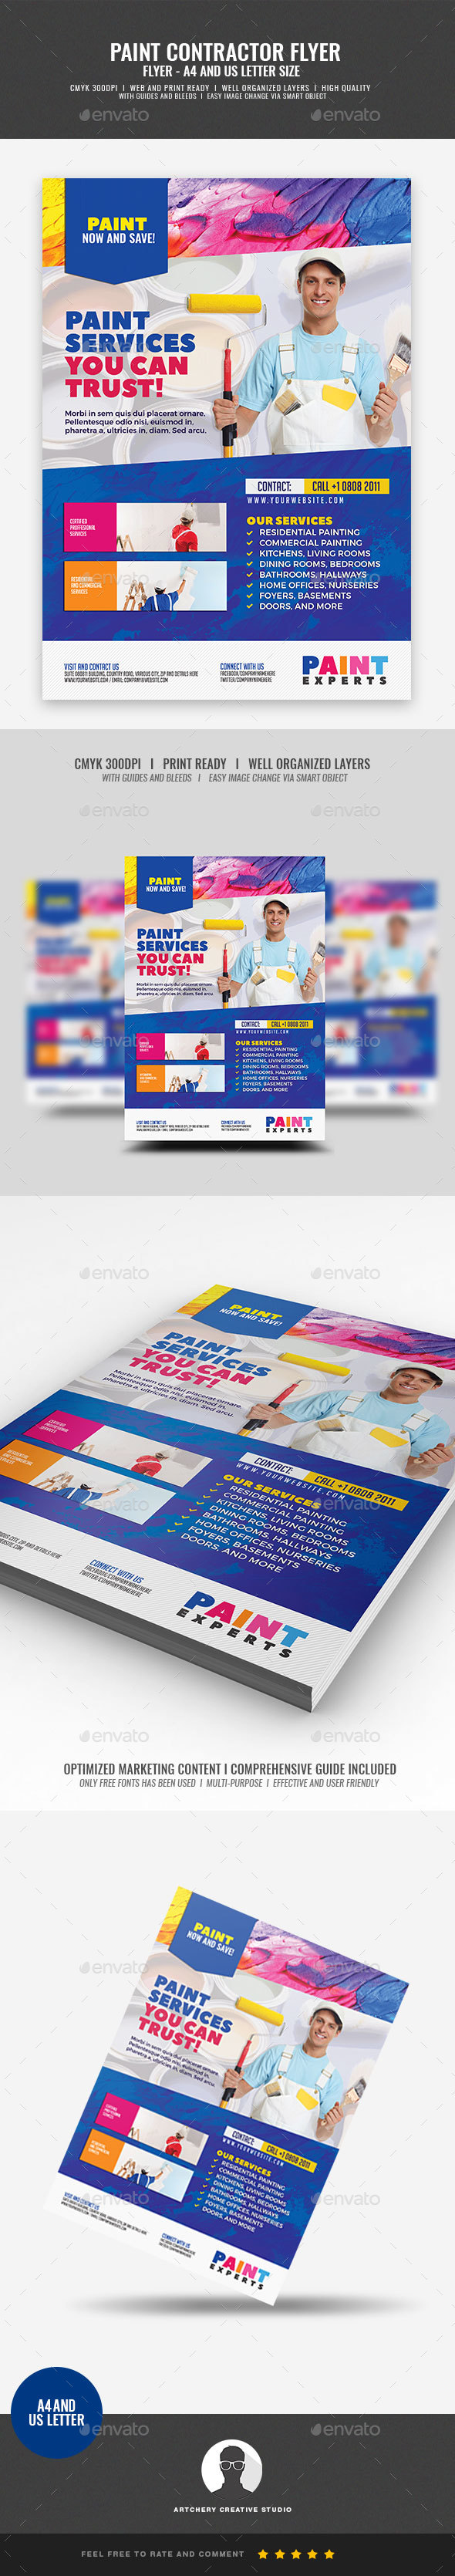 GraphicRiver Paint Contractor Flyer 21052755